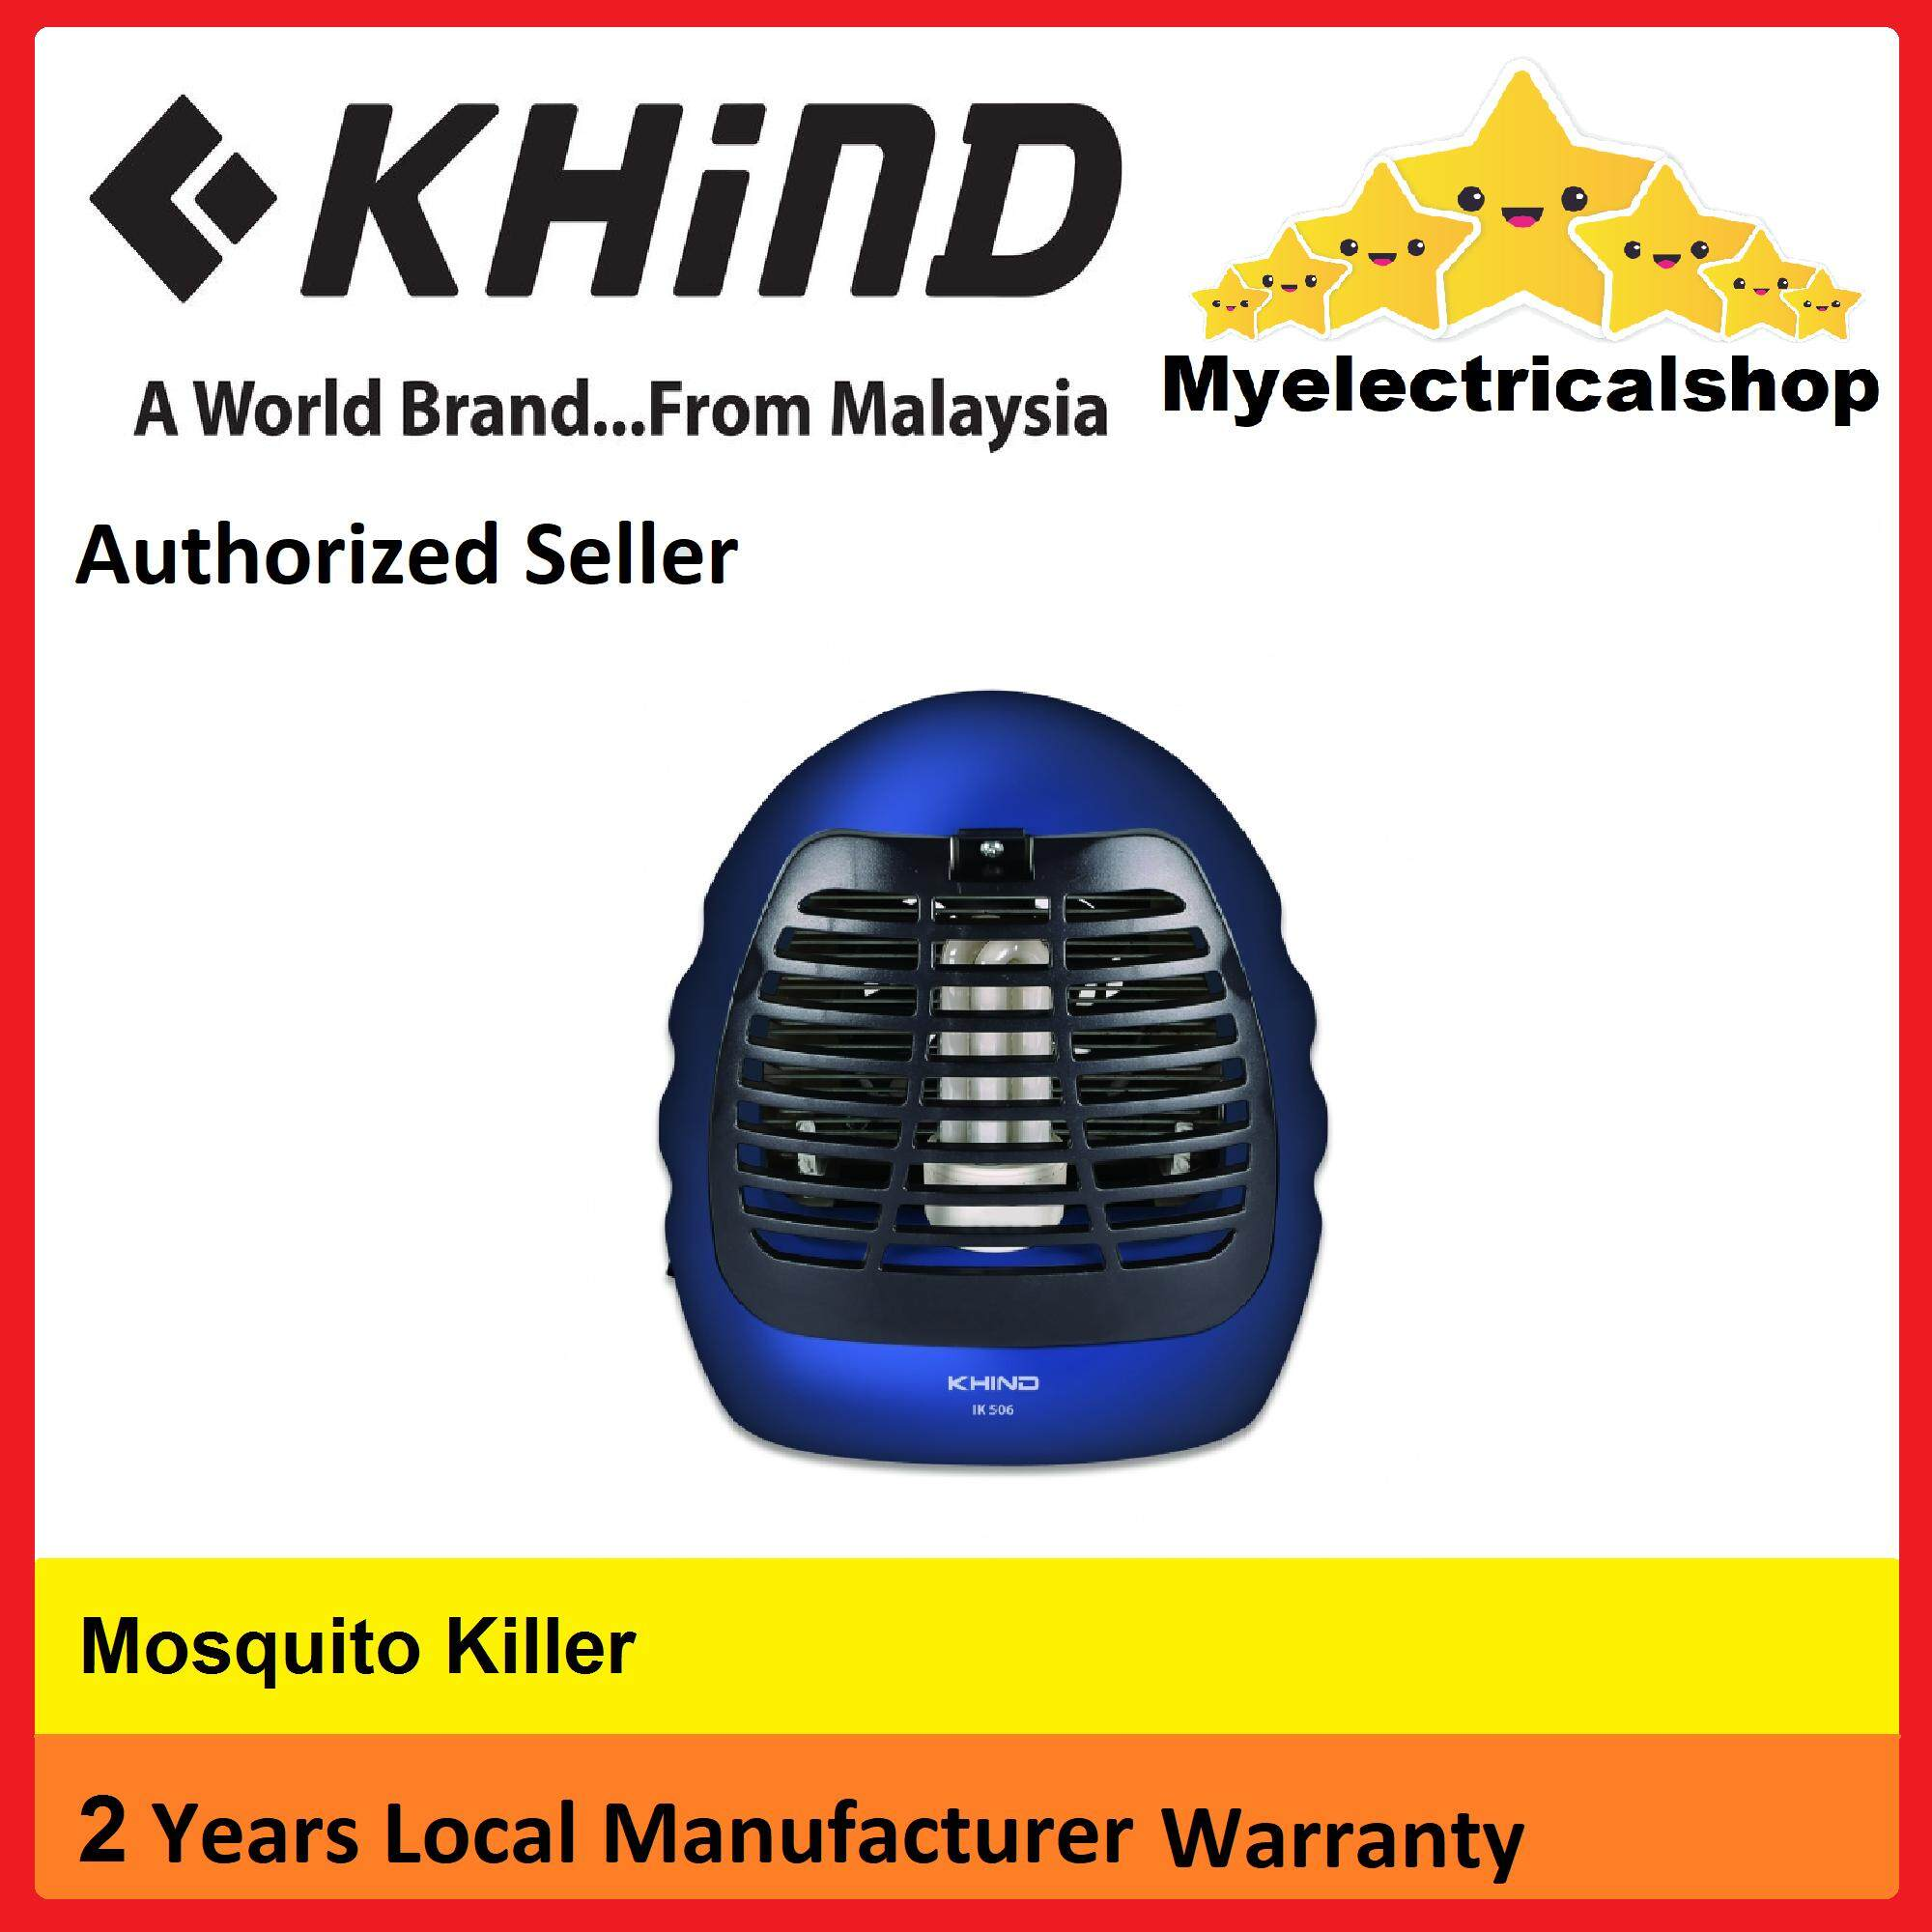 Home Electric Insect Killers Buy At Circuitboardinsectkillerjpg Khind Killer Ik506 Myelectricalshop